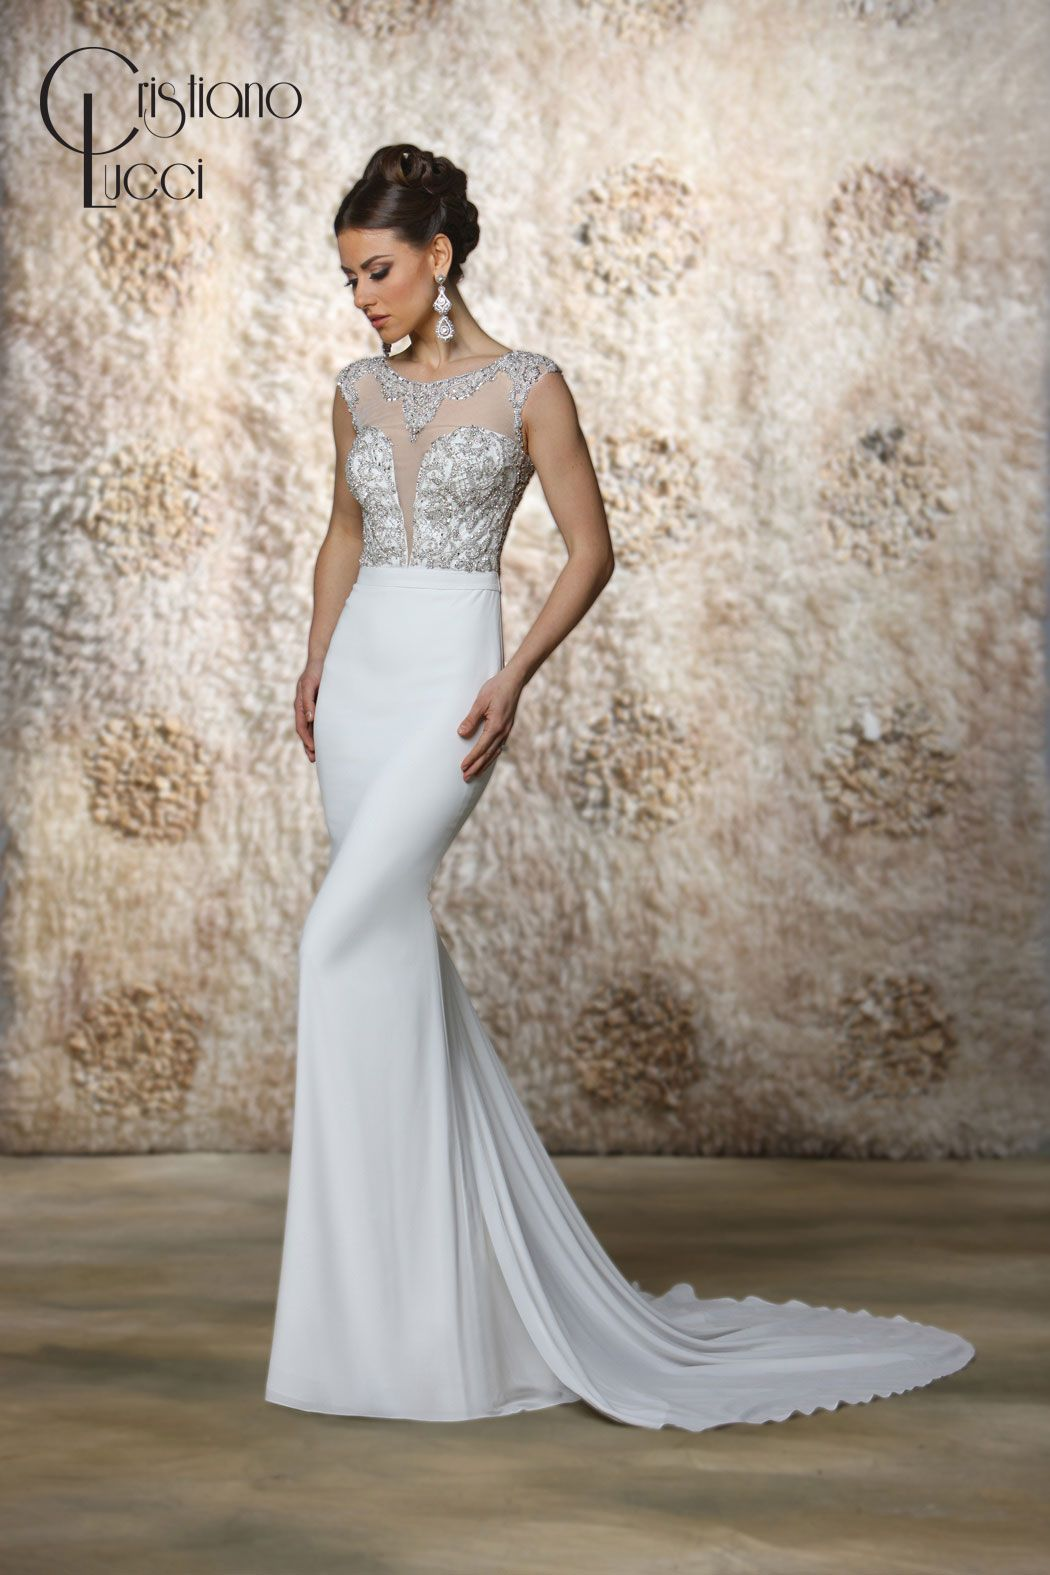 12931/Uma This soft chiffon sheath features a fully beaded  crystal bodice and neckline draping the shoulder and tracing the back. Finished with crystal buttons back closure Fabric: Chiffon+Tulle Available Color: Ivory/Nude, Ivory/Ivory White/Nude, White/White